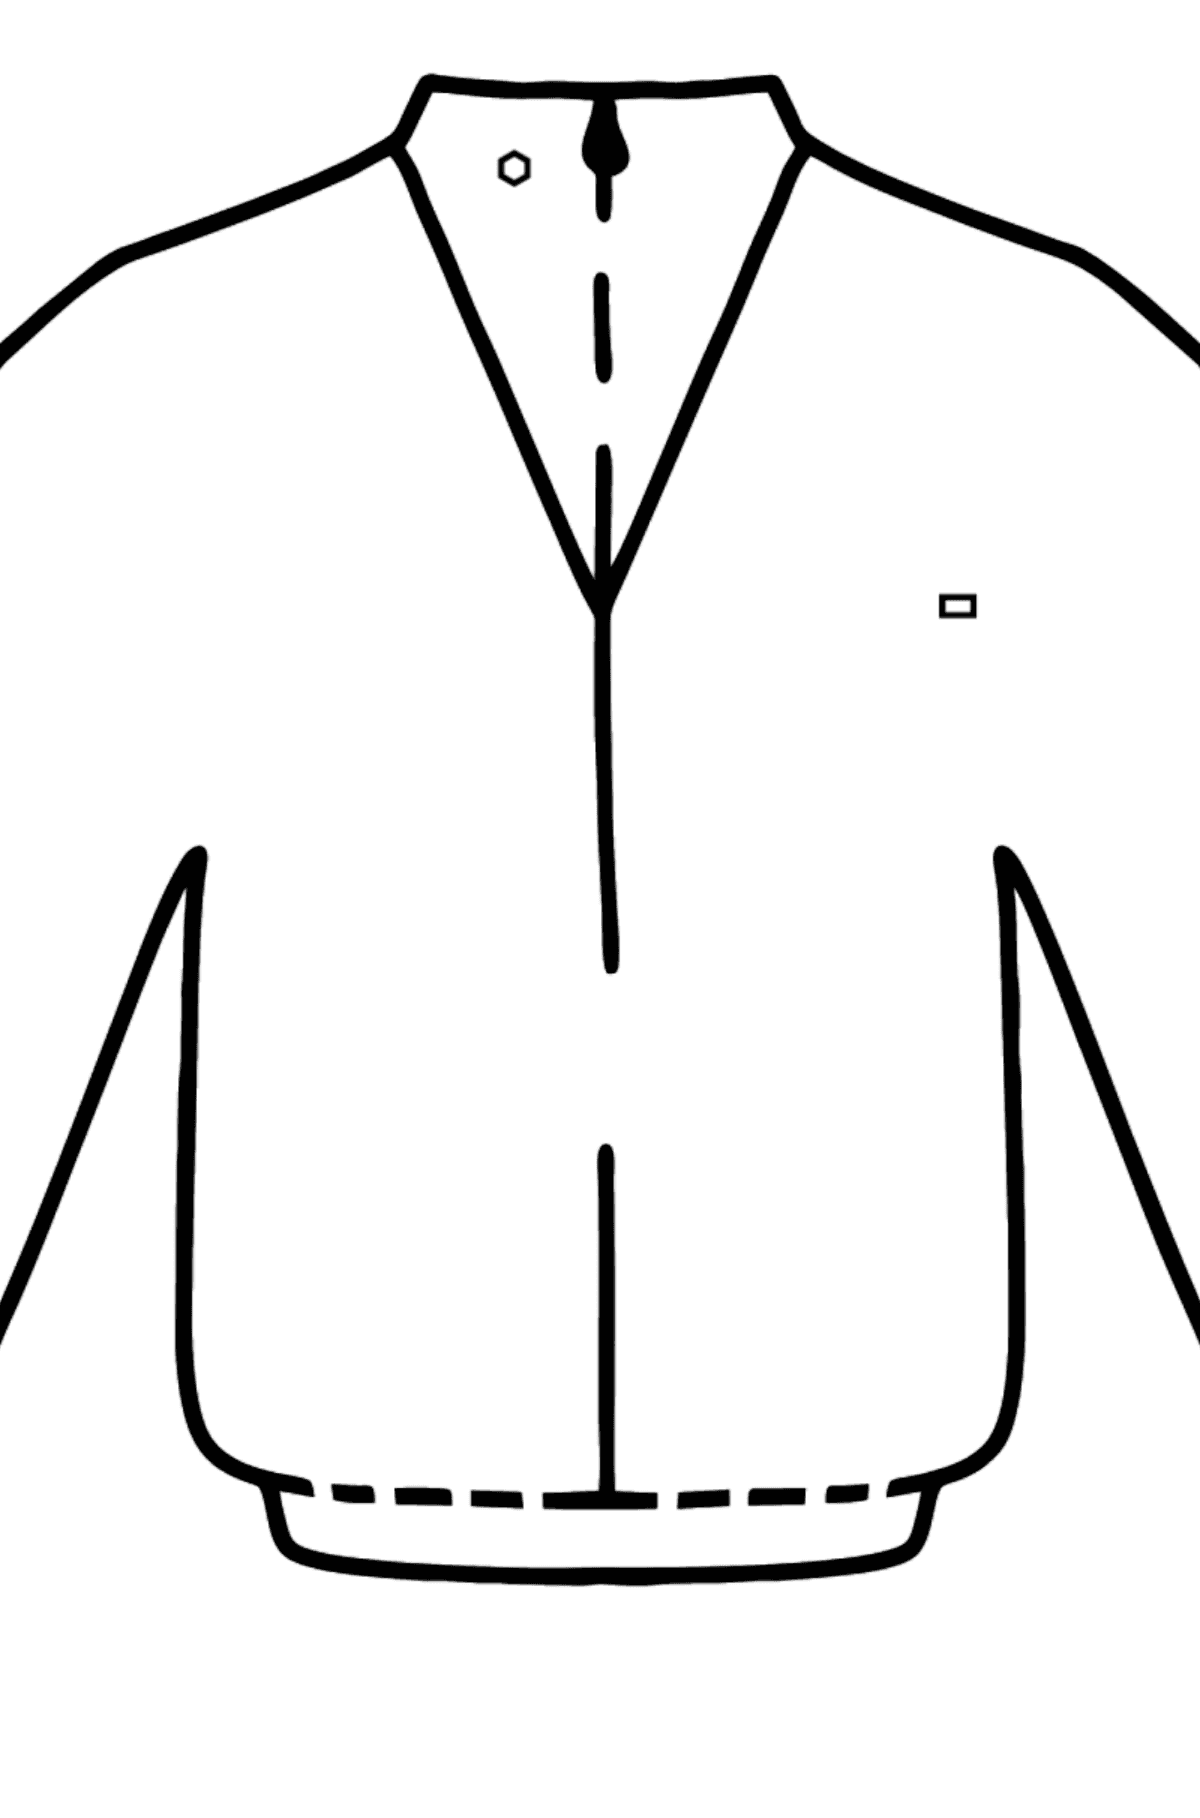 Blue Jacket coloring page - Coloring by Geometric Shapes for Kids